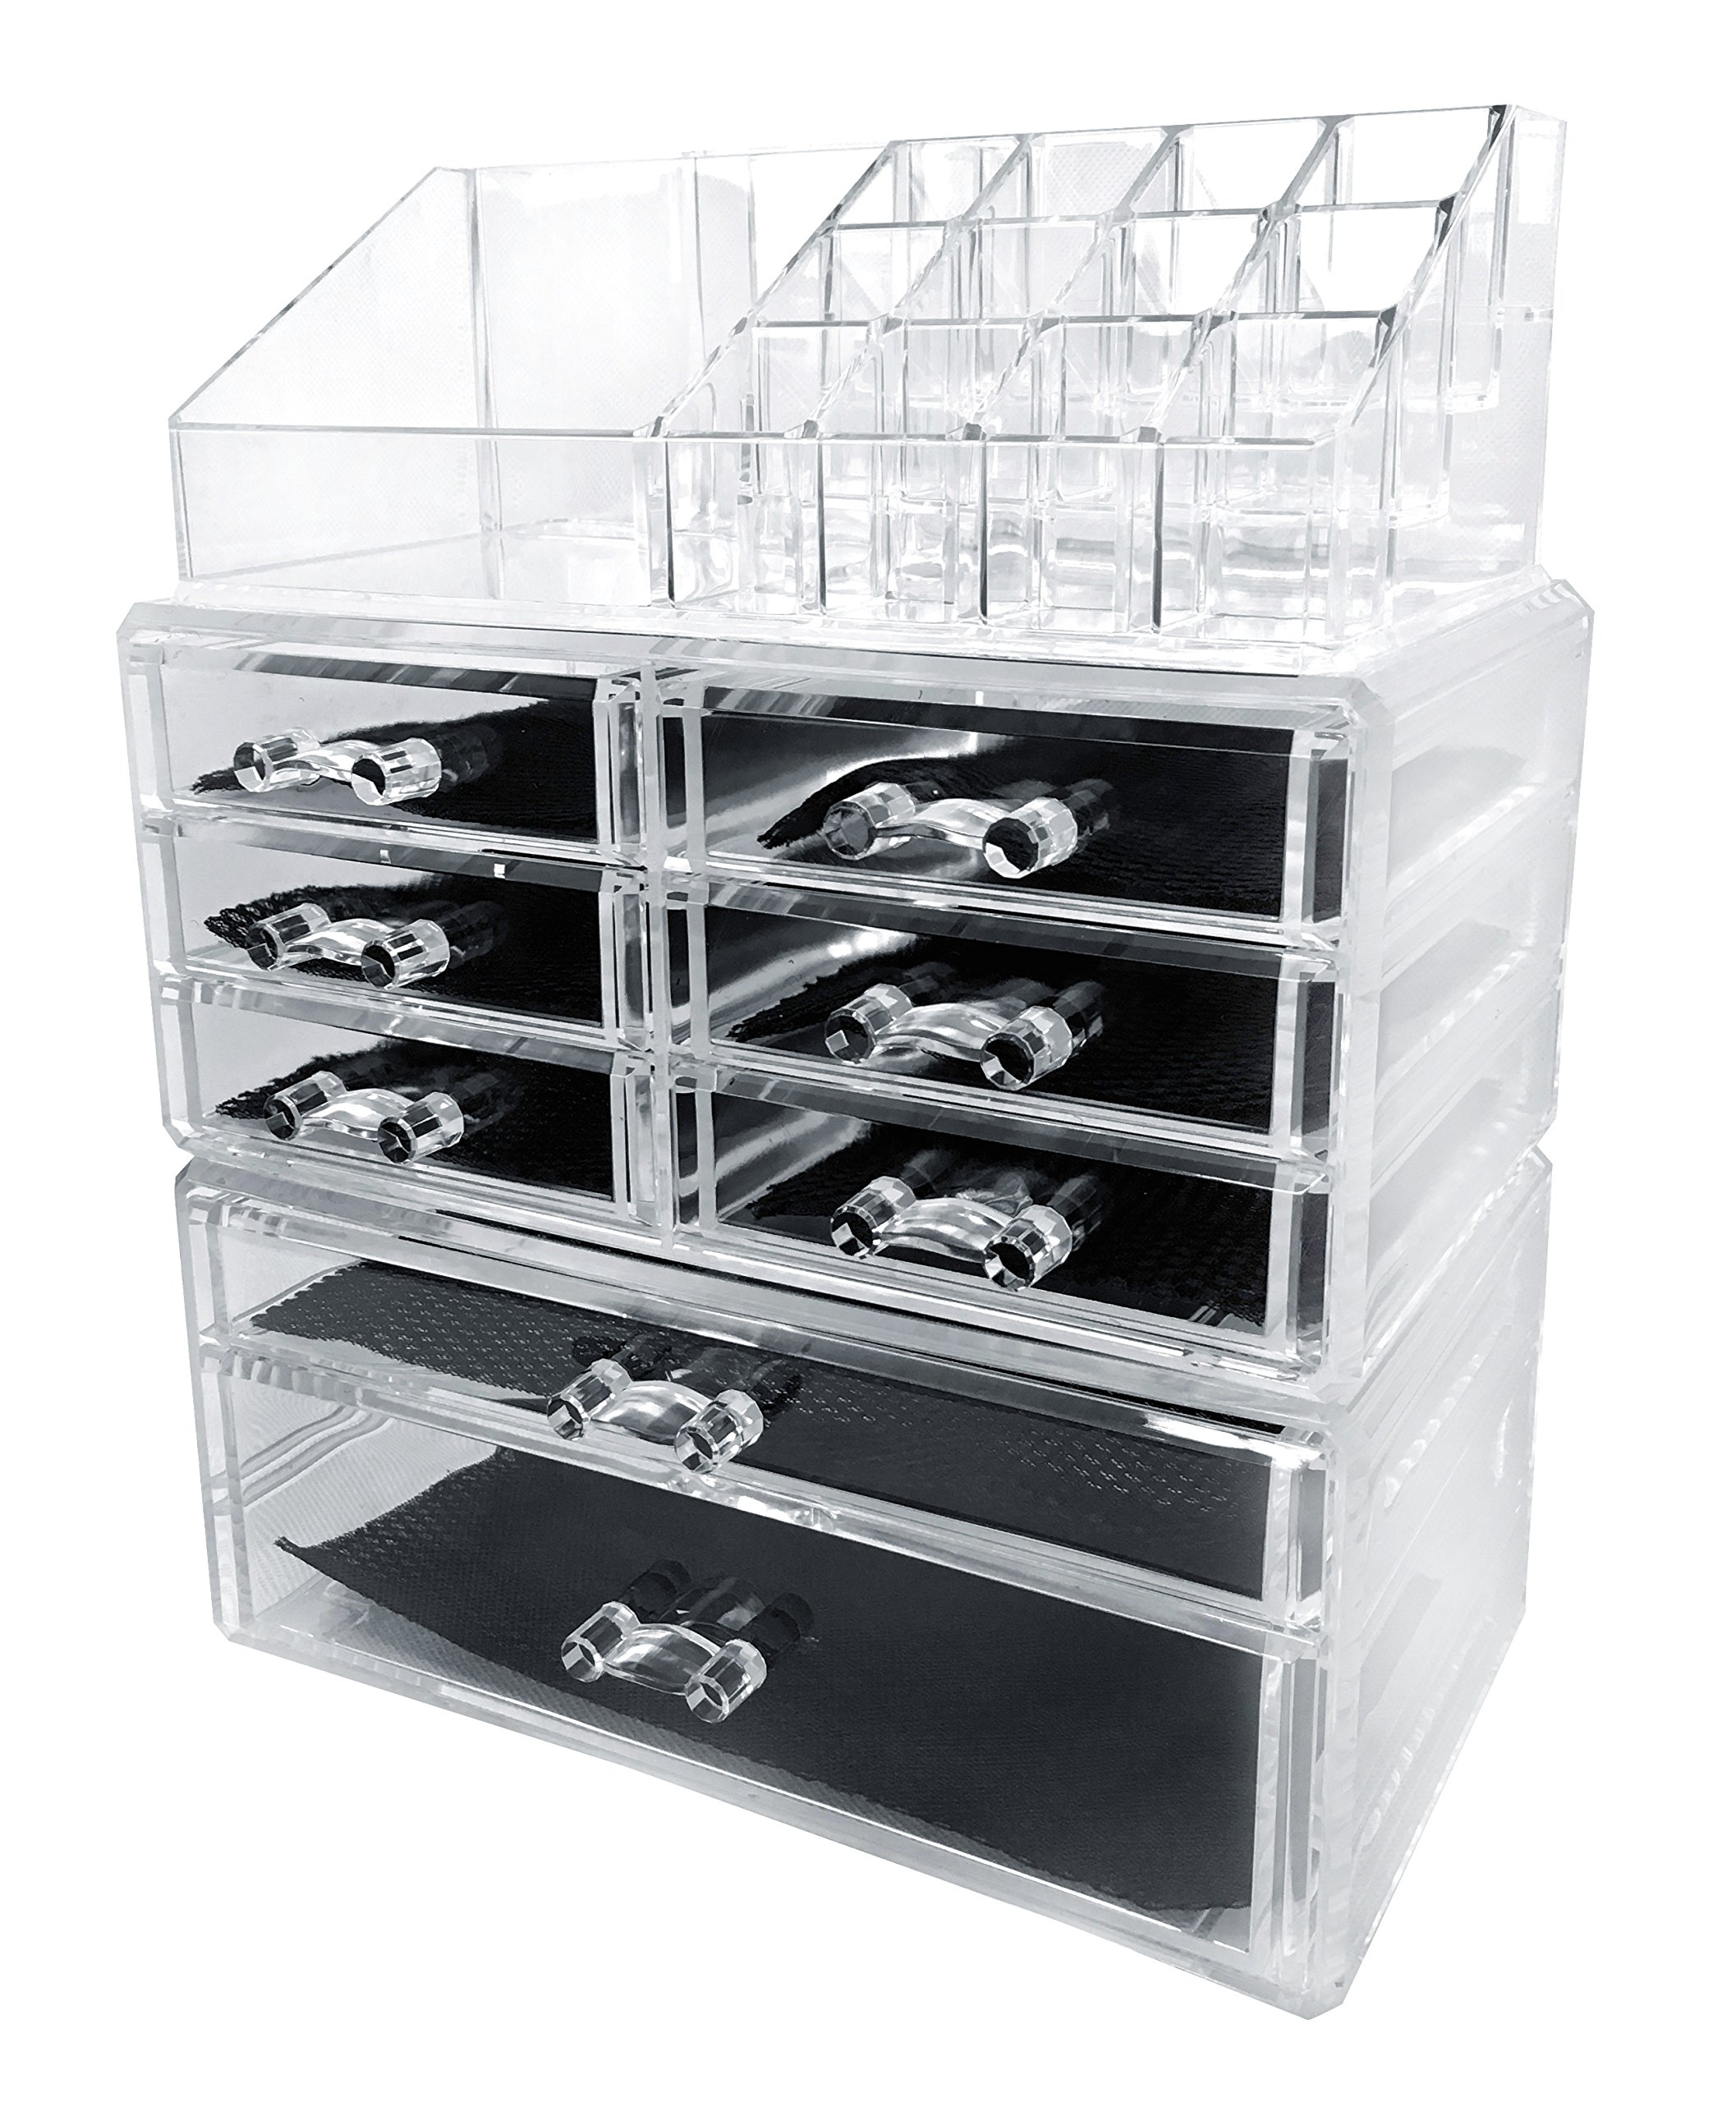 sodynee acrylic makeup cosmetic organizer storage drawers. Black Bedroom Furniture Sets. Home Design Ideas